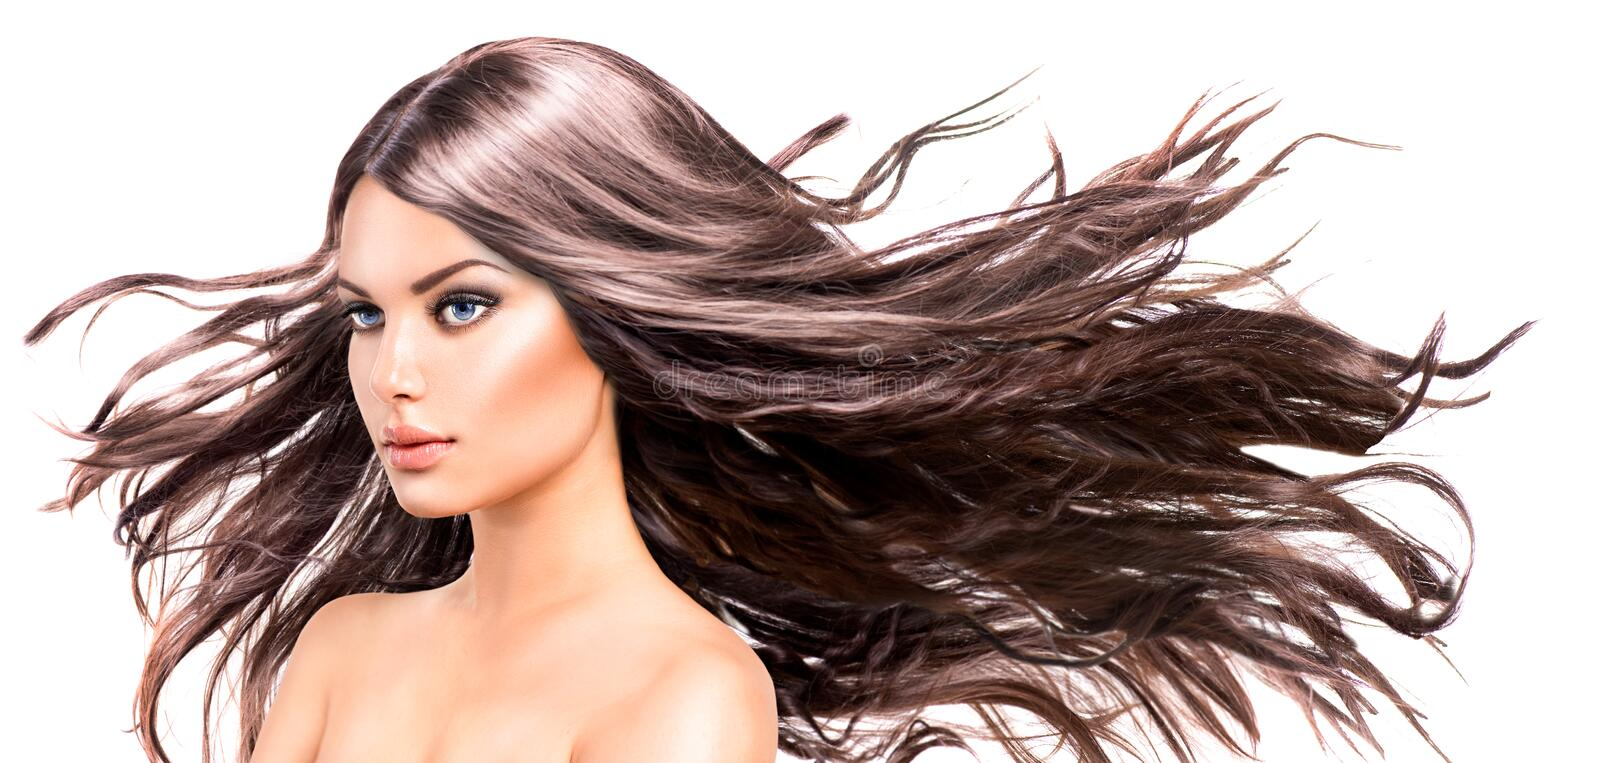 Model Girl with Long Blowing Hair. Fashion Model Girl Portrait with Long Blowing Hair royalty free stock images